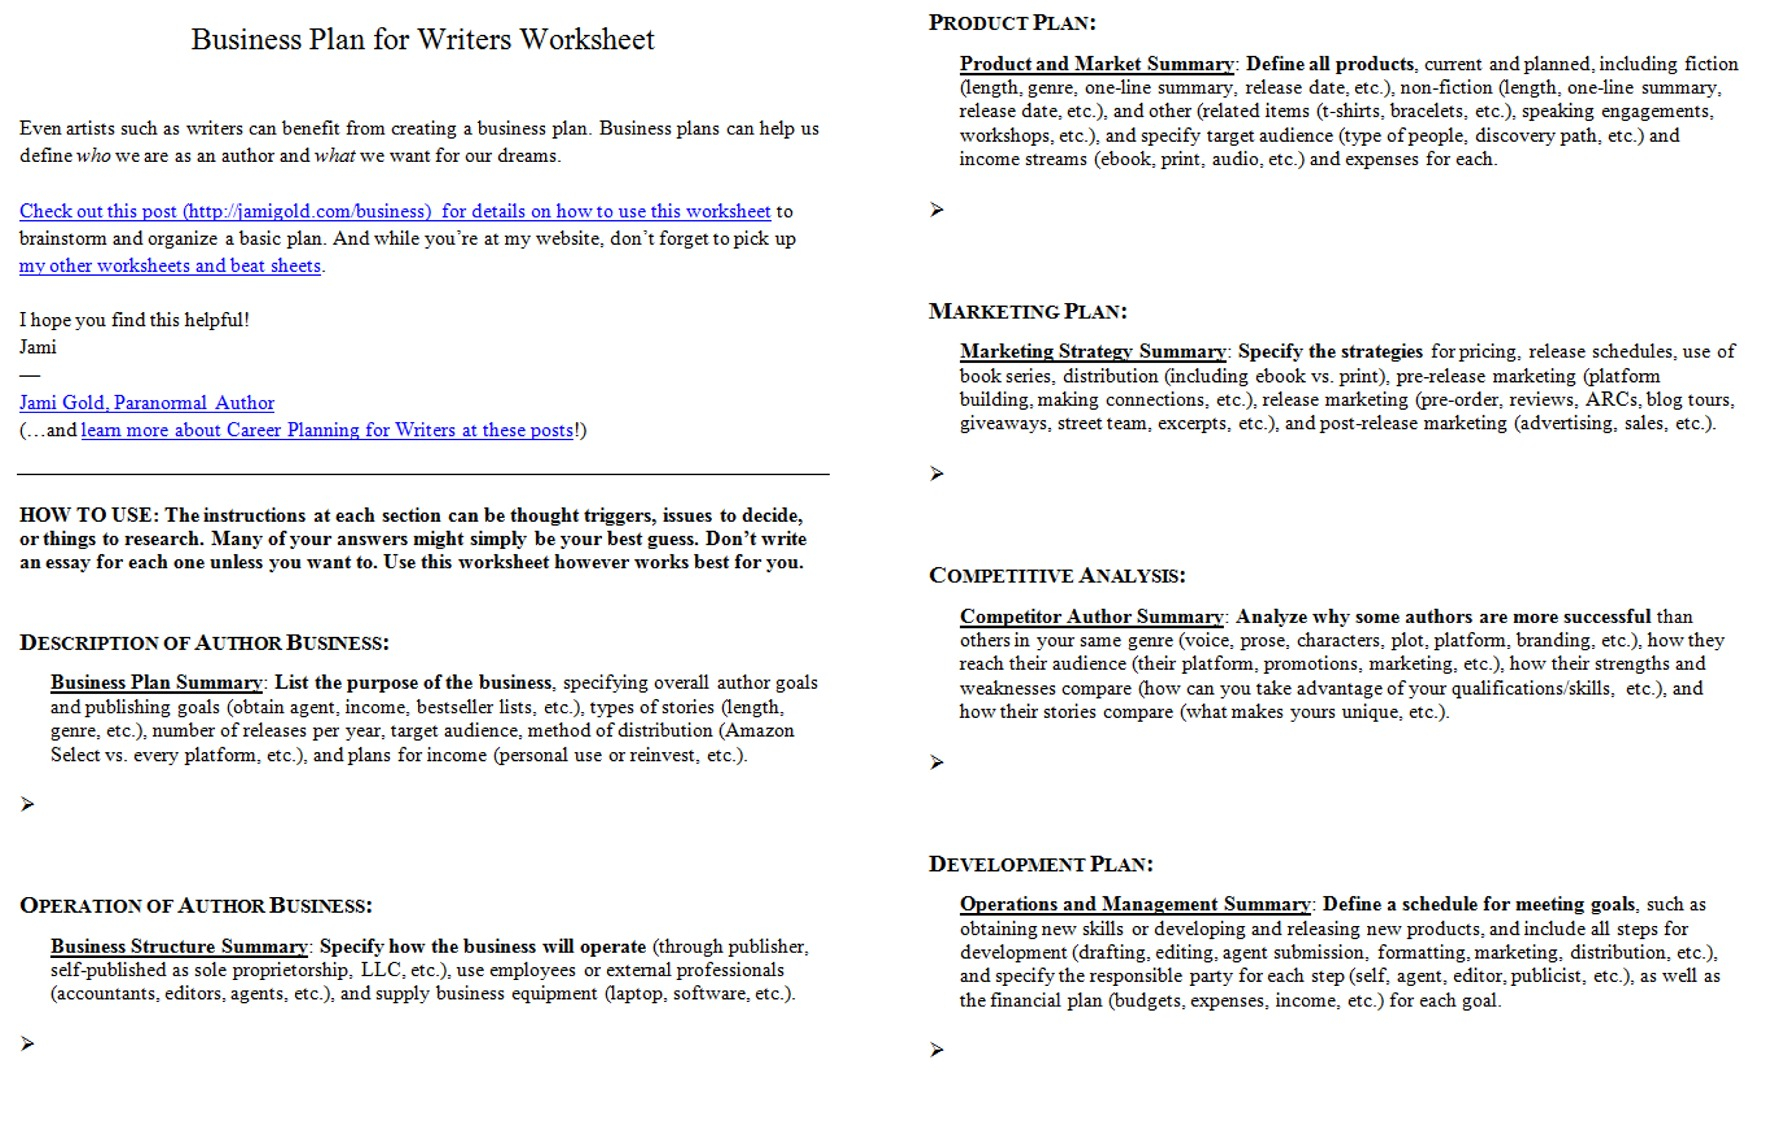 Aldiablosus  Unique Worksheets For Writers  Jami Gold Paranormal Author With Remarkable Screen Shot Of Both Pages Of The Business Plan For Writers Worksheet With Awesome World Maps Worksheets Also Learning French For Kids Worksheets In Addition Grade  Simple Machines Worksheets And Dolch Words Worksheets Free Printable As Well As Printable Scissor Skills Practice Worksheets Additionally Suffix Prefix Worksheets From Jamigoldcom With Aldiablosus  Remarkable Worksheets For Writers  Jami Gold Paranormal Author With Awesome Screen Shot Of Both Pages Of The Business Plan For Writers Worksheet And Unique World Maps Worksheets Also Learning French For Kids Worksheets In Addition Grade  Simple Machines Worksheets From Jamigoldcom